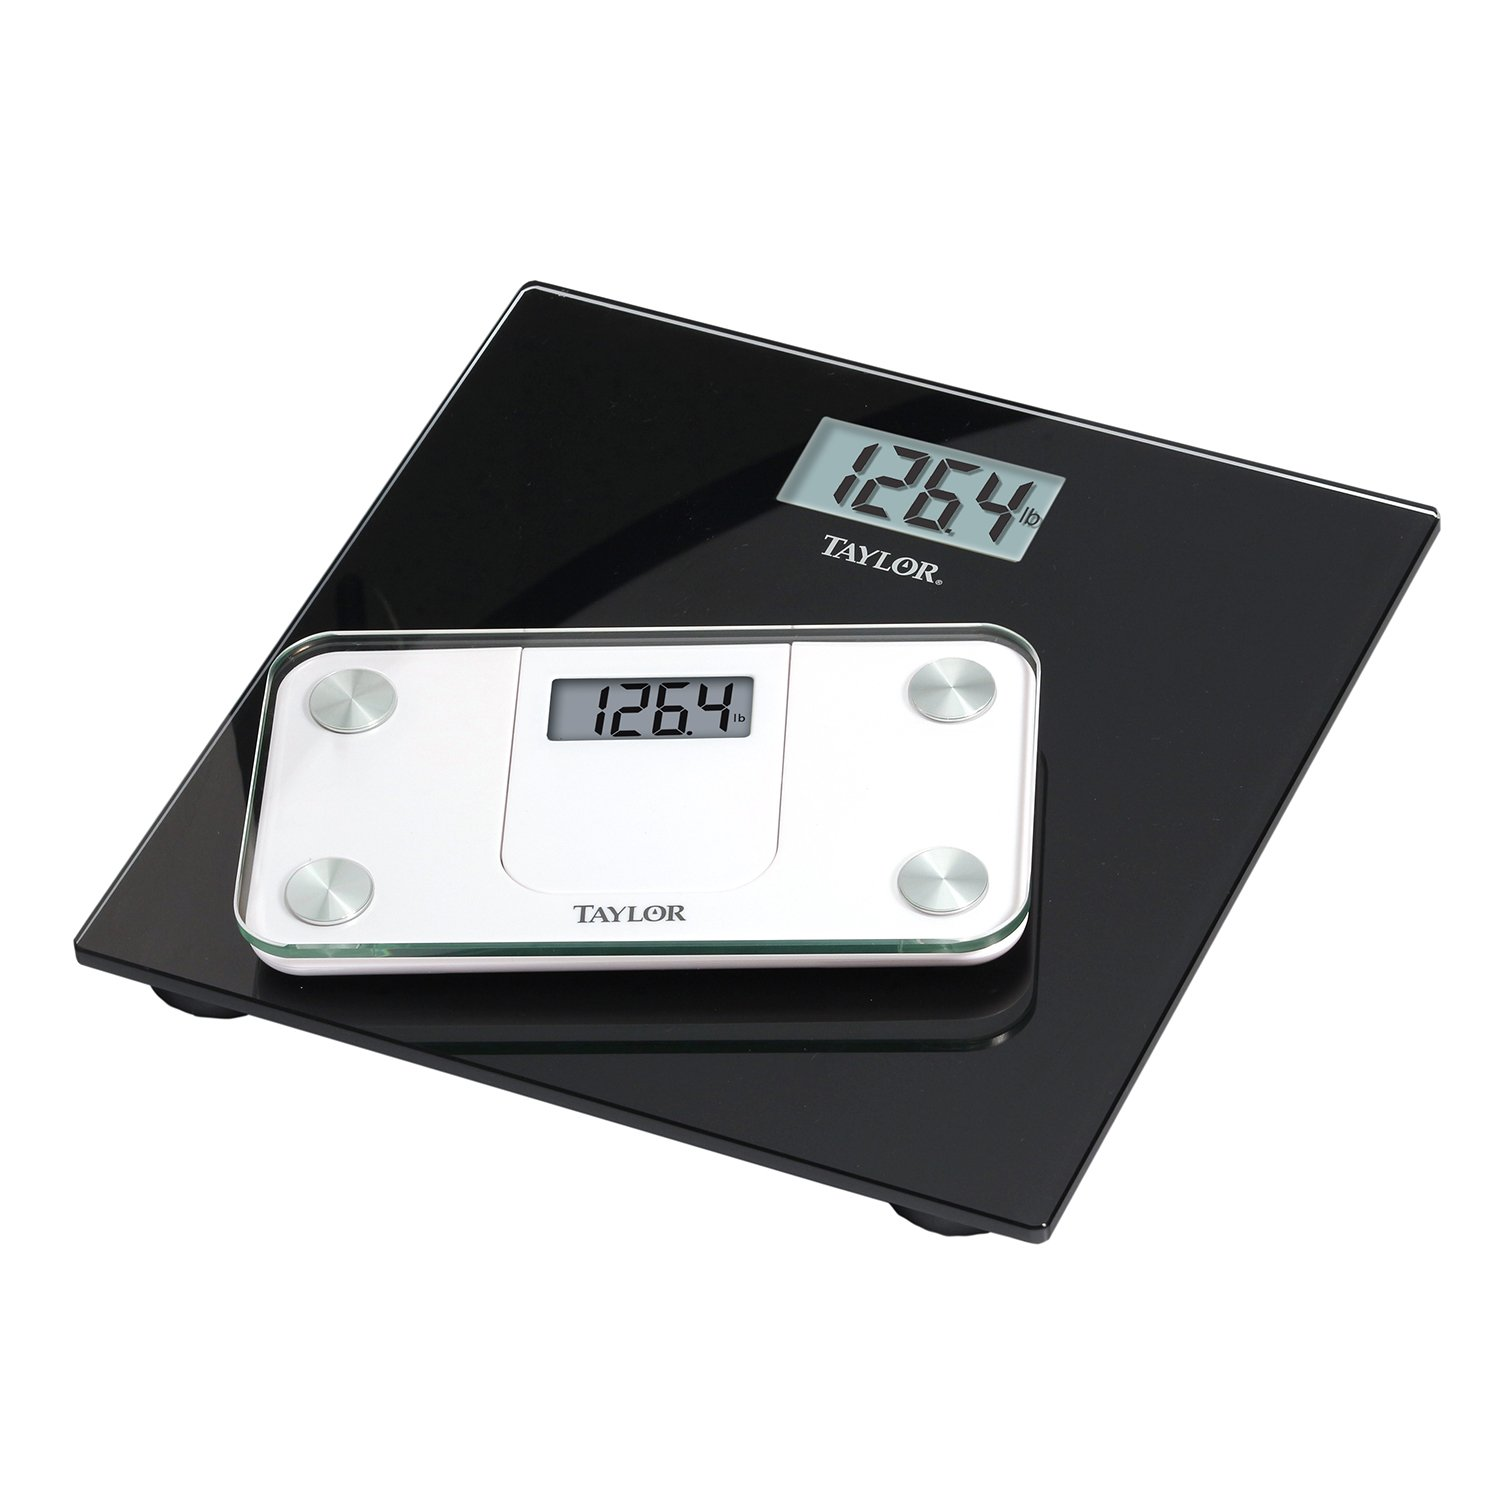 Taylor Precision Products Digital Glass Mini Scale with Expandable Readout Taylor Thermometers 7086